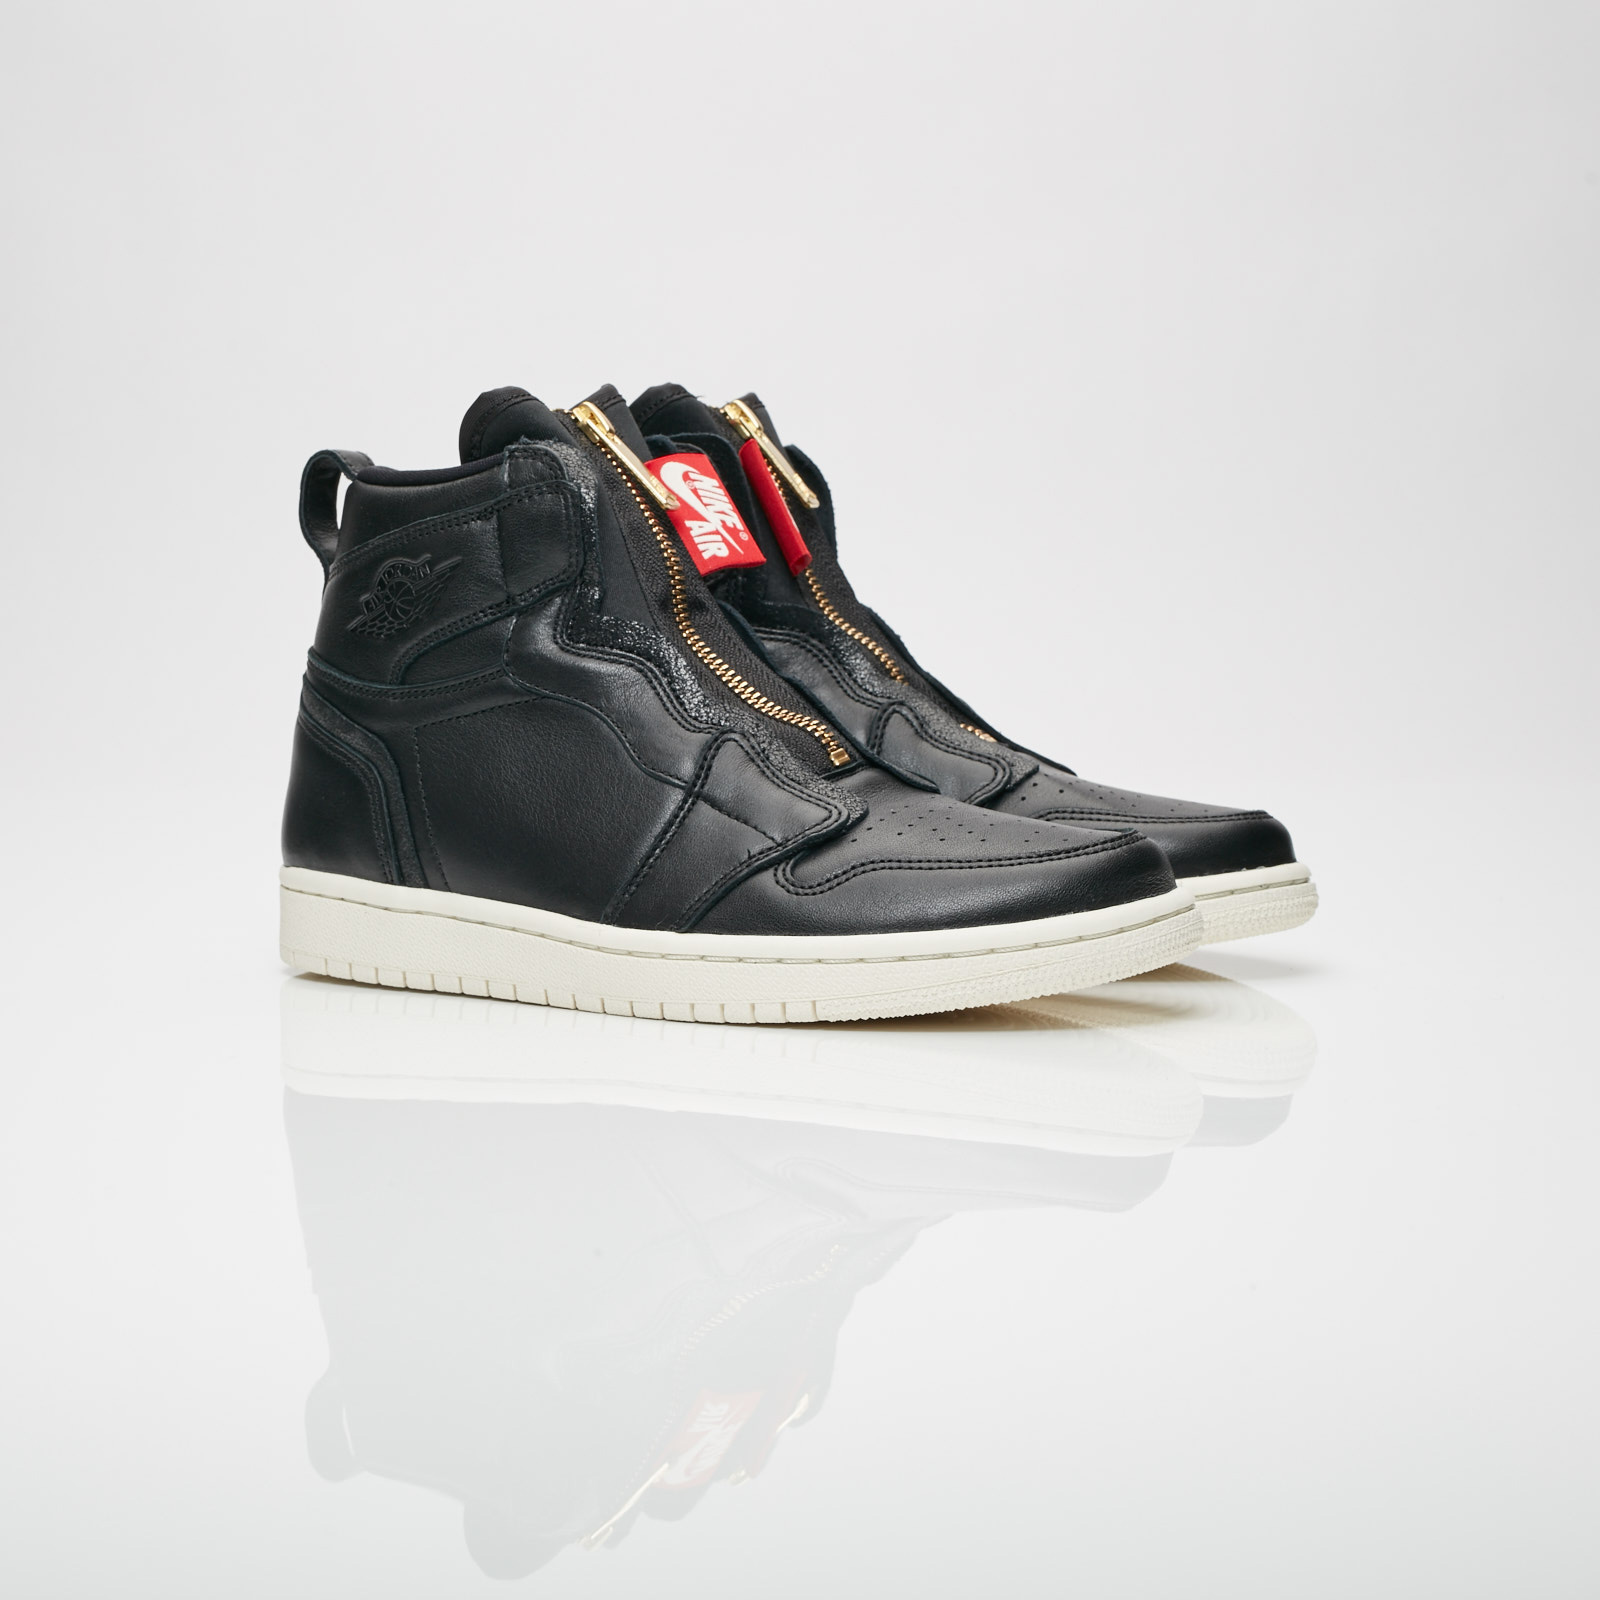 super popular a8bf0 95031 Jordan Brand Wmns Air Jordan 1 High Zip